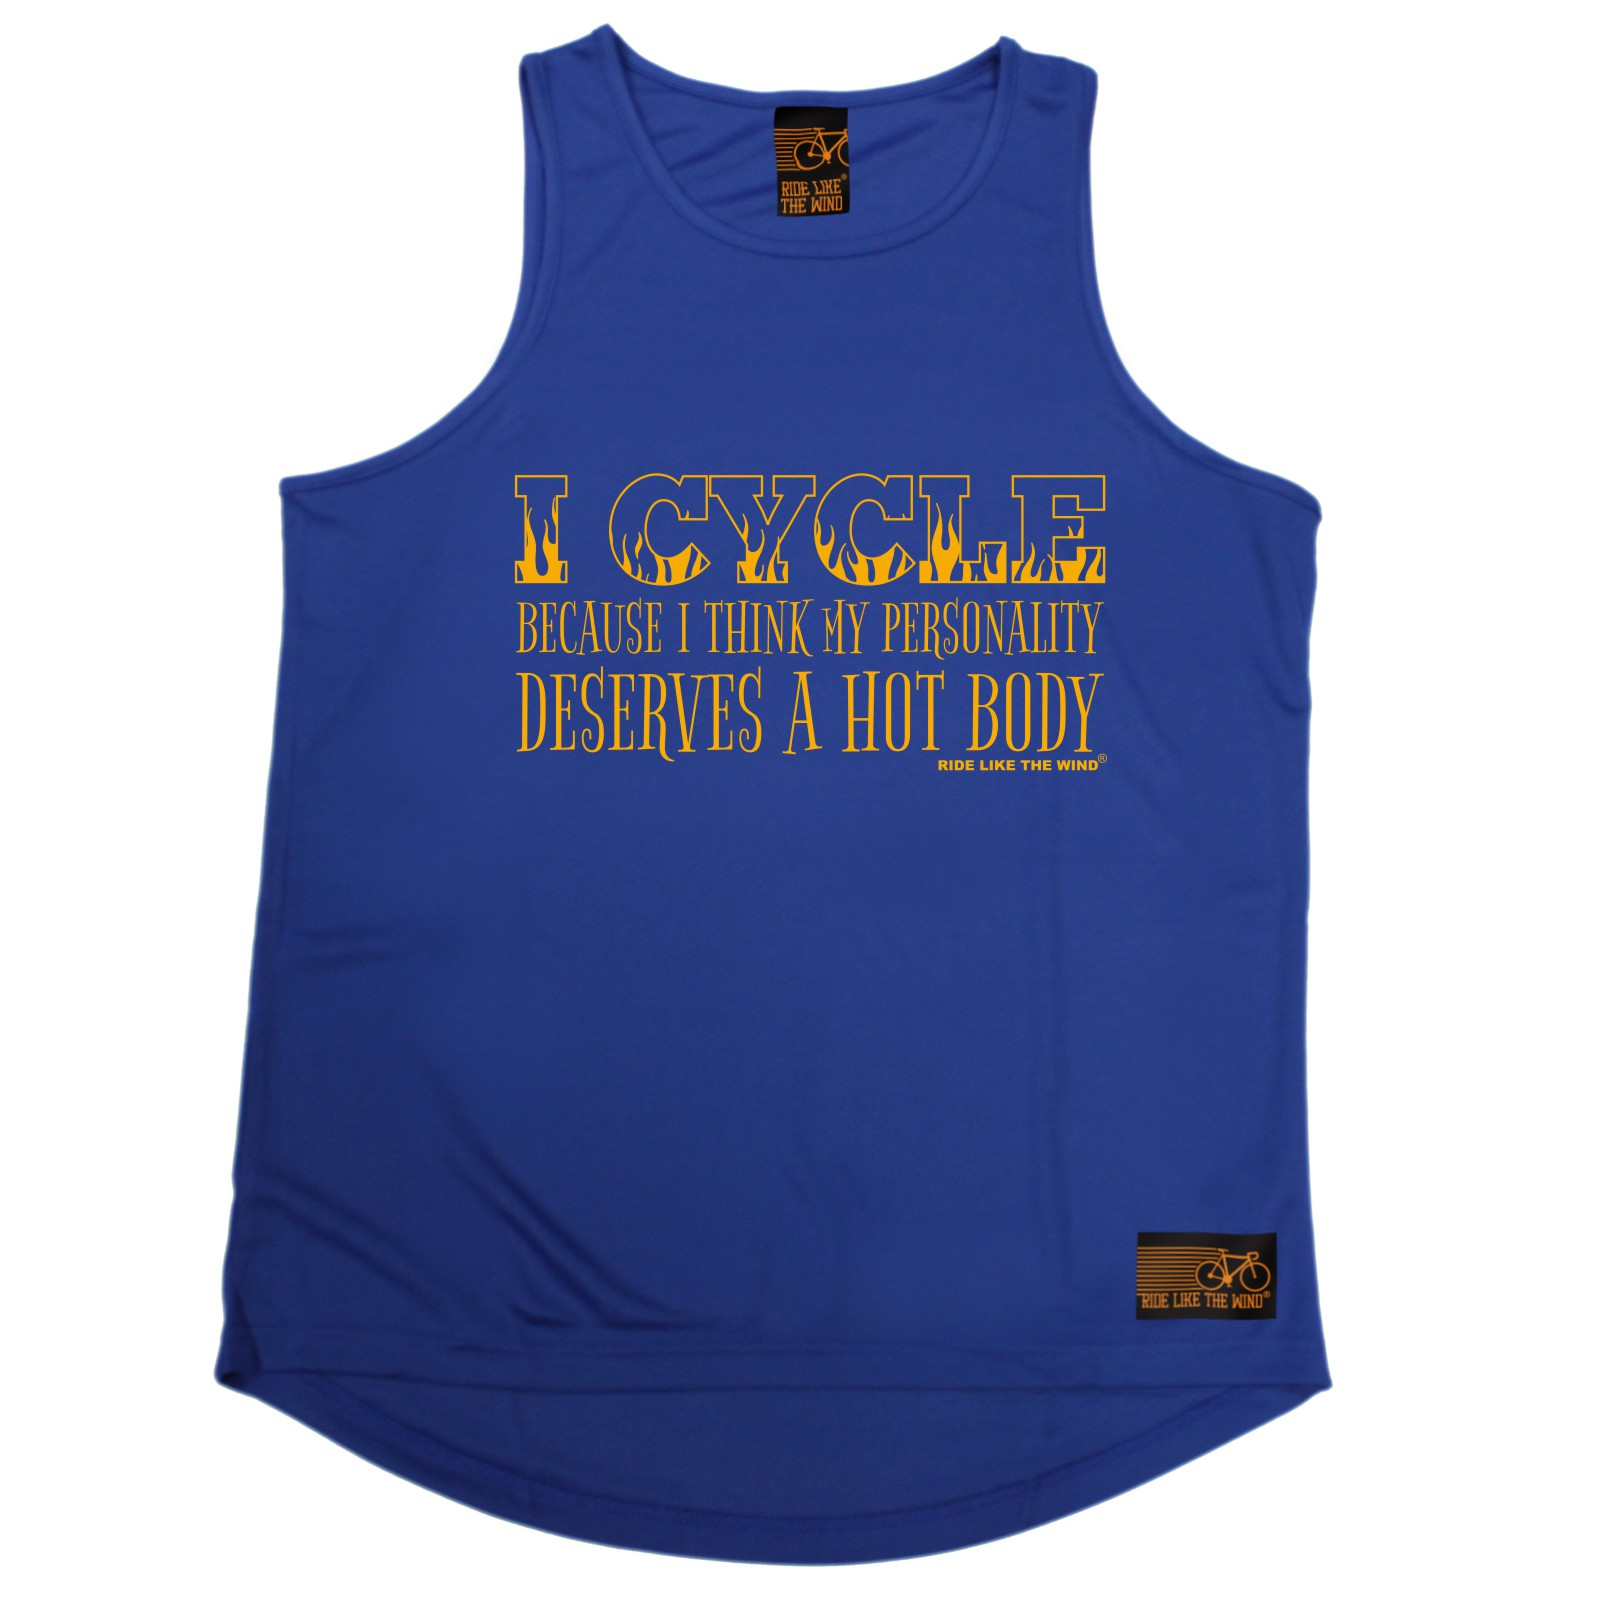 MENS-Cycle-Because-Personality-Deserves-Hot-Body-Breathable-TRAINING-VEST